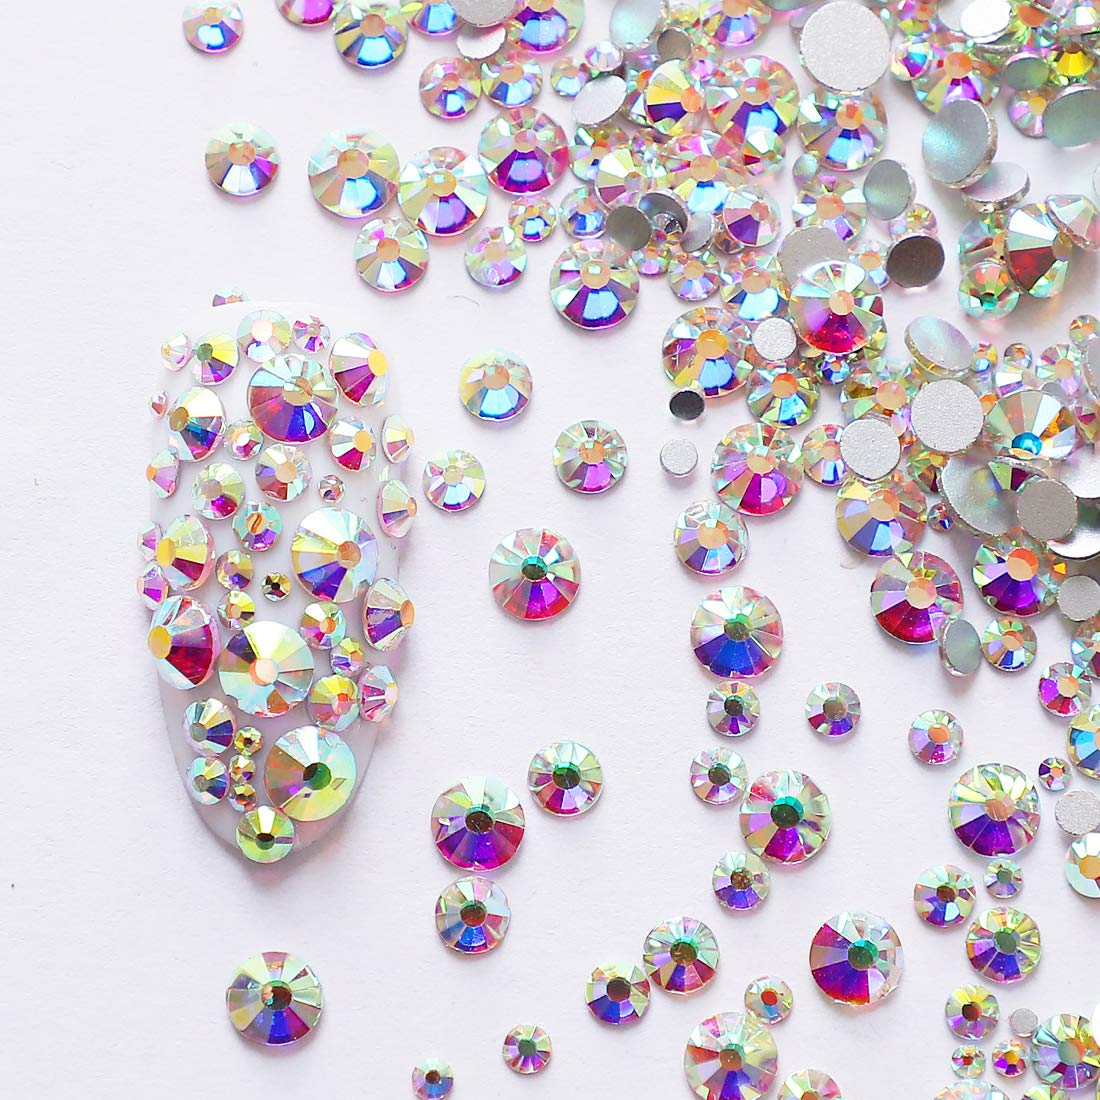 4c4bcceed Amazon.com: 2592pcs Flatback Crystal Irridescent AB Rhinestones Round Beads  Gem Pearls for 3D Nail Art DIY Crafts Clothes Shoes Phone Case Decoration;  ...